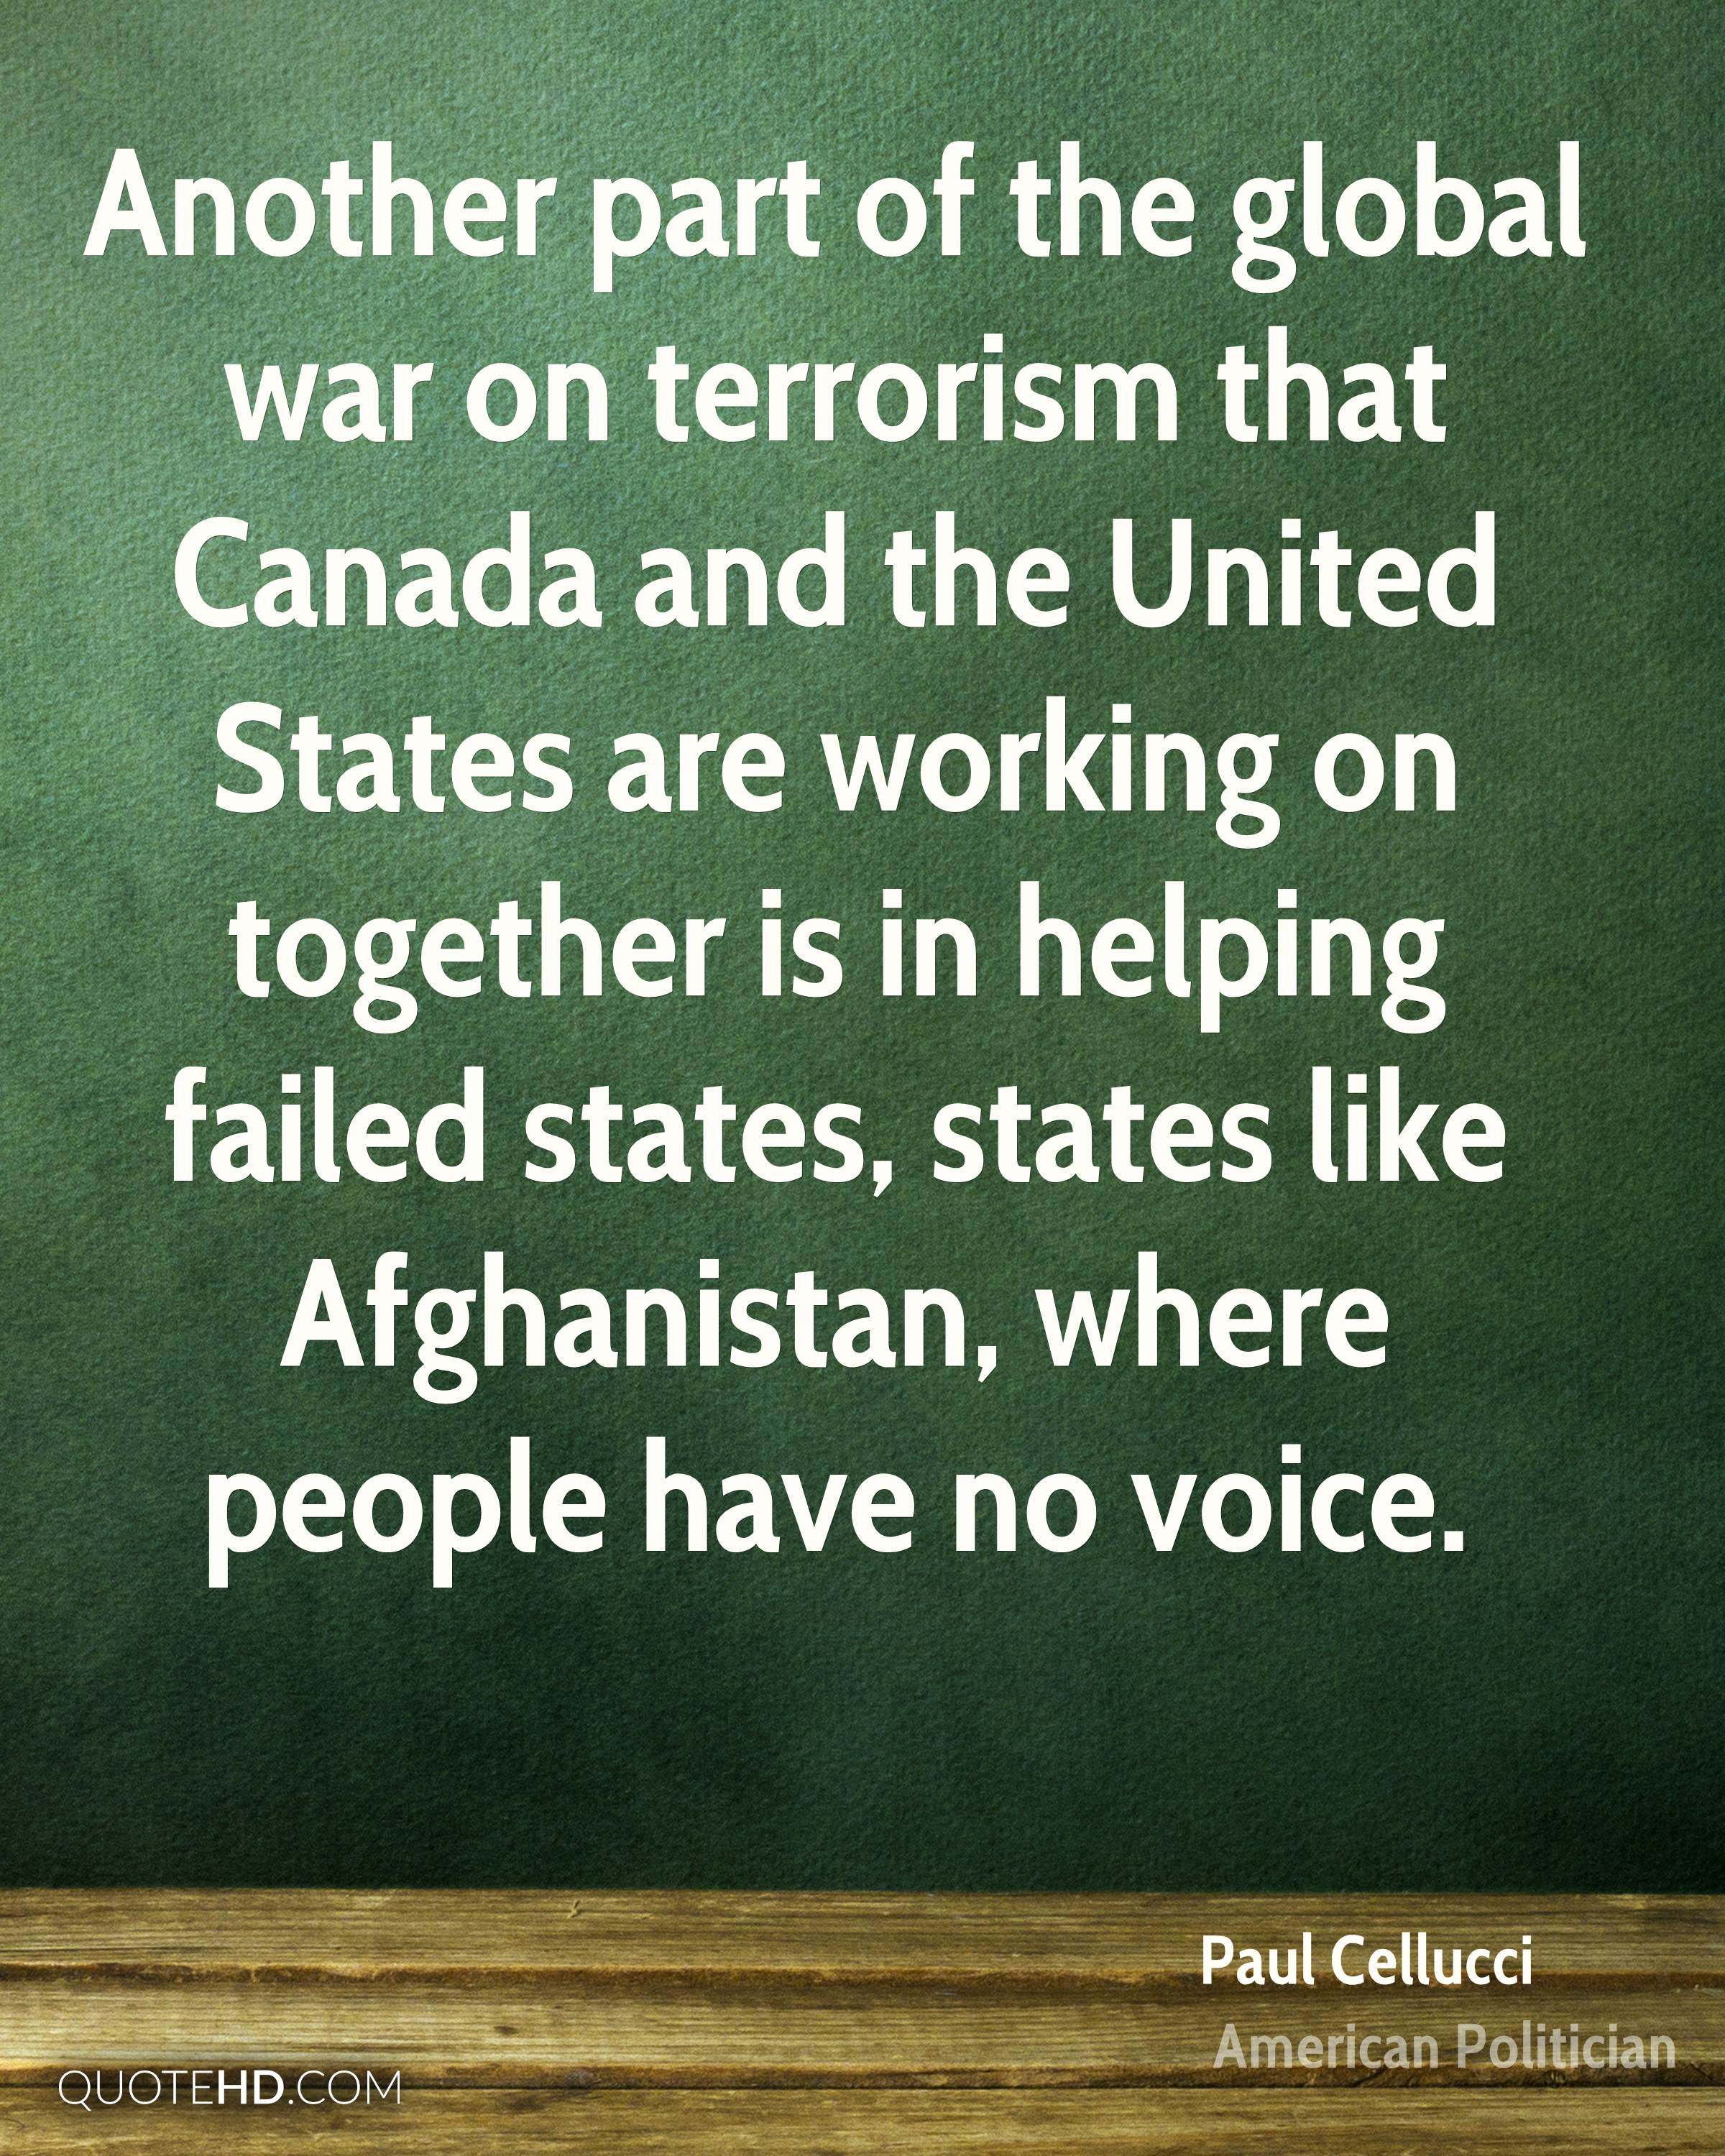 Another part of the global war on terrorism that Canada and the United States are working on together is in helping failed states, states like Afghanistan, where people have no voice.